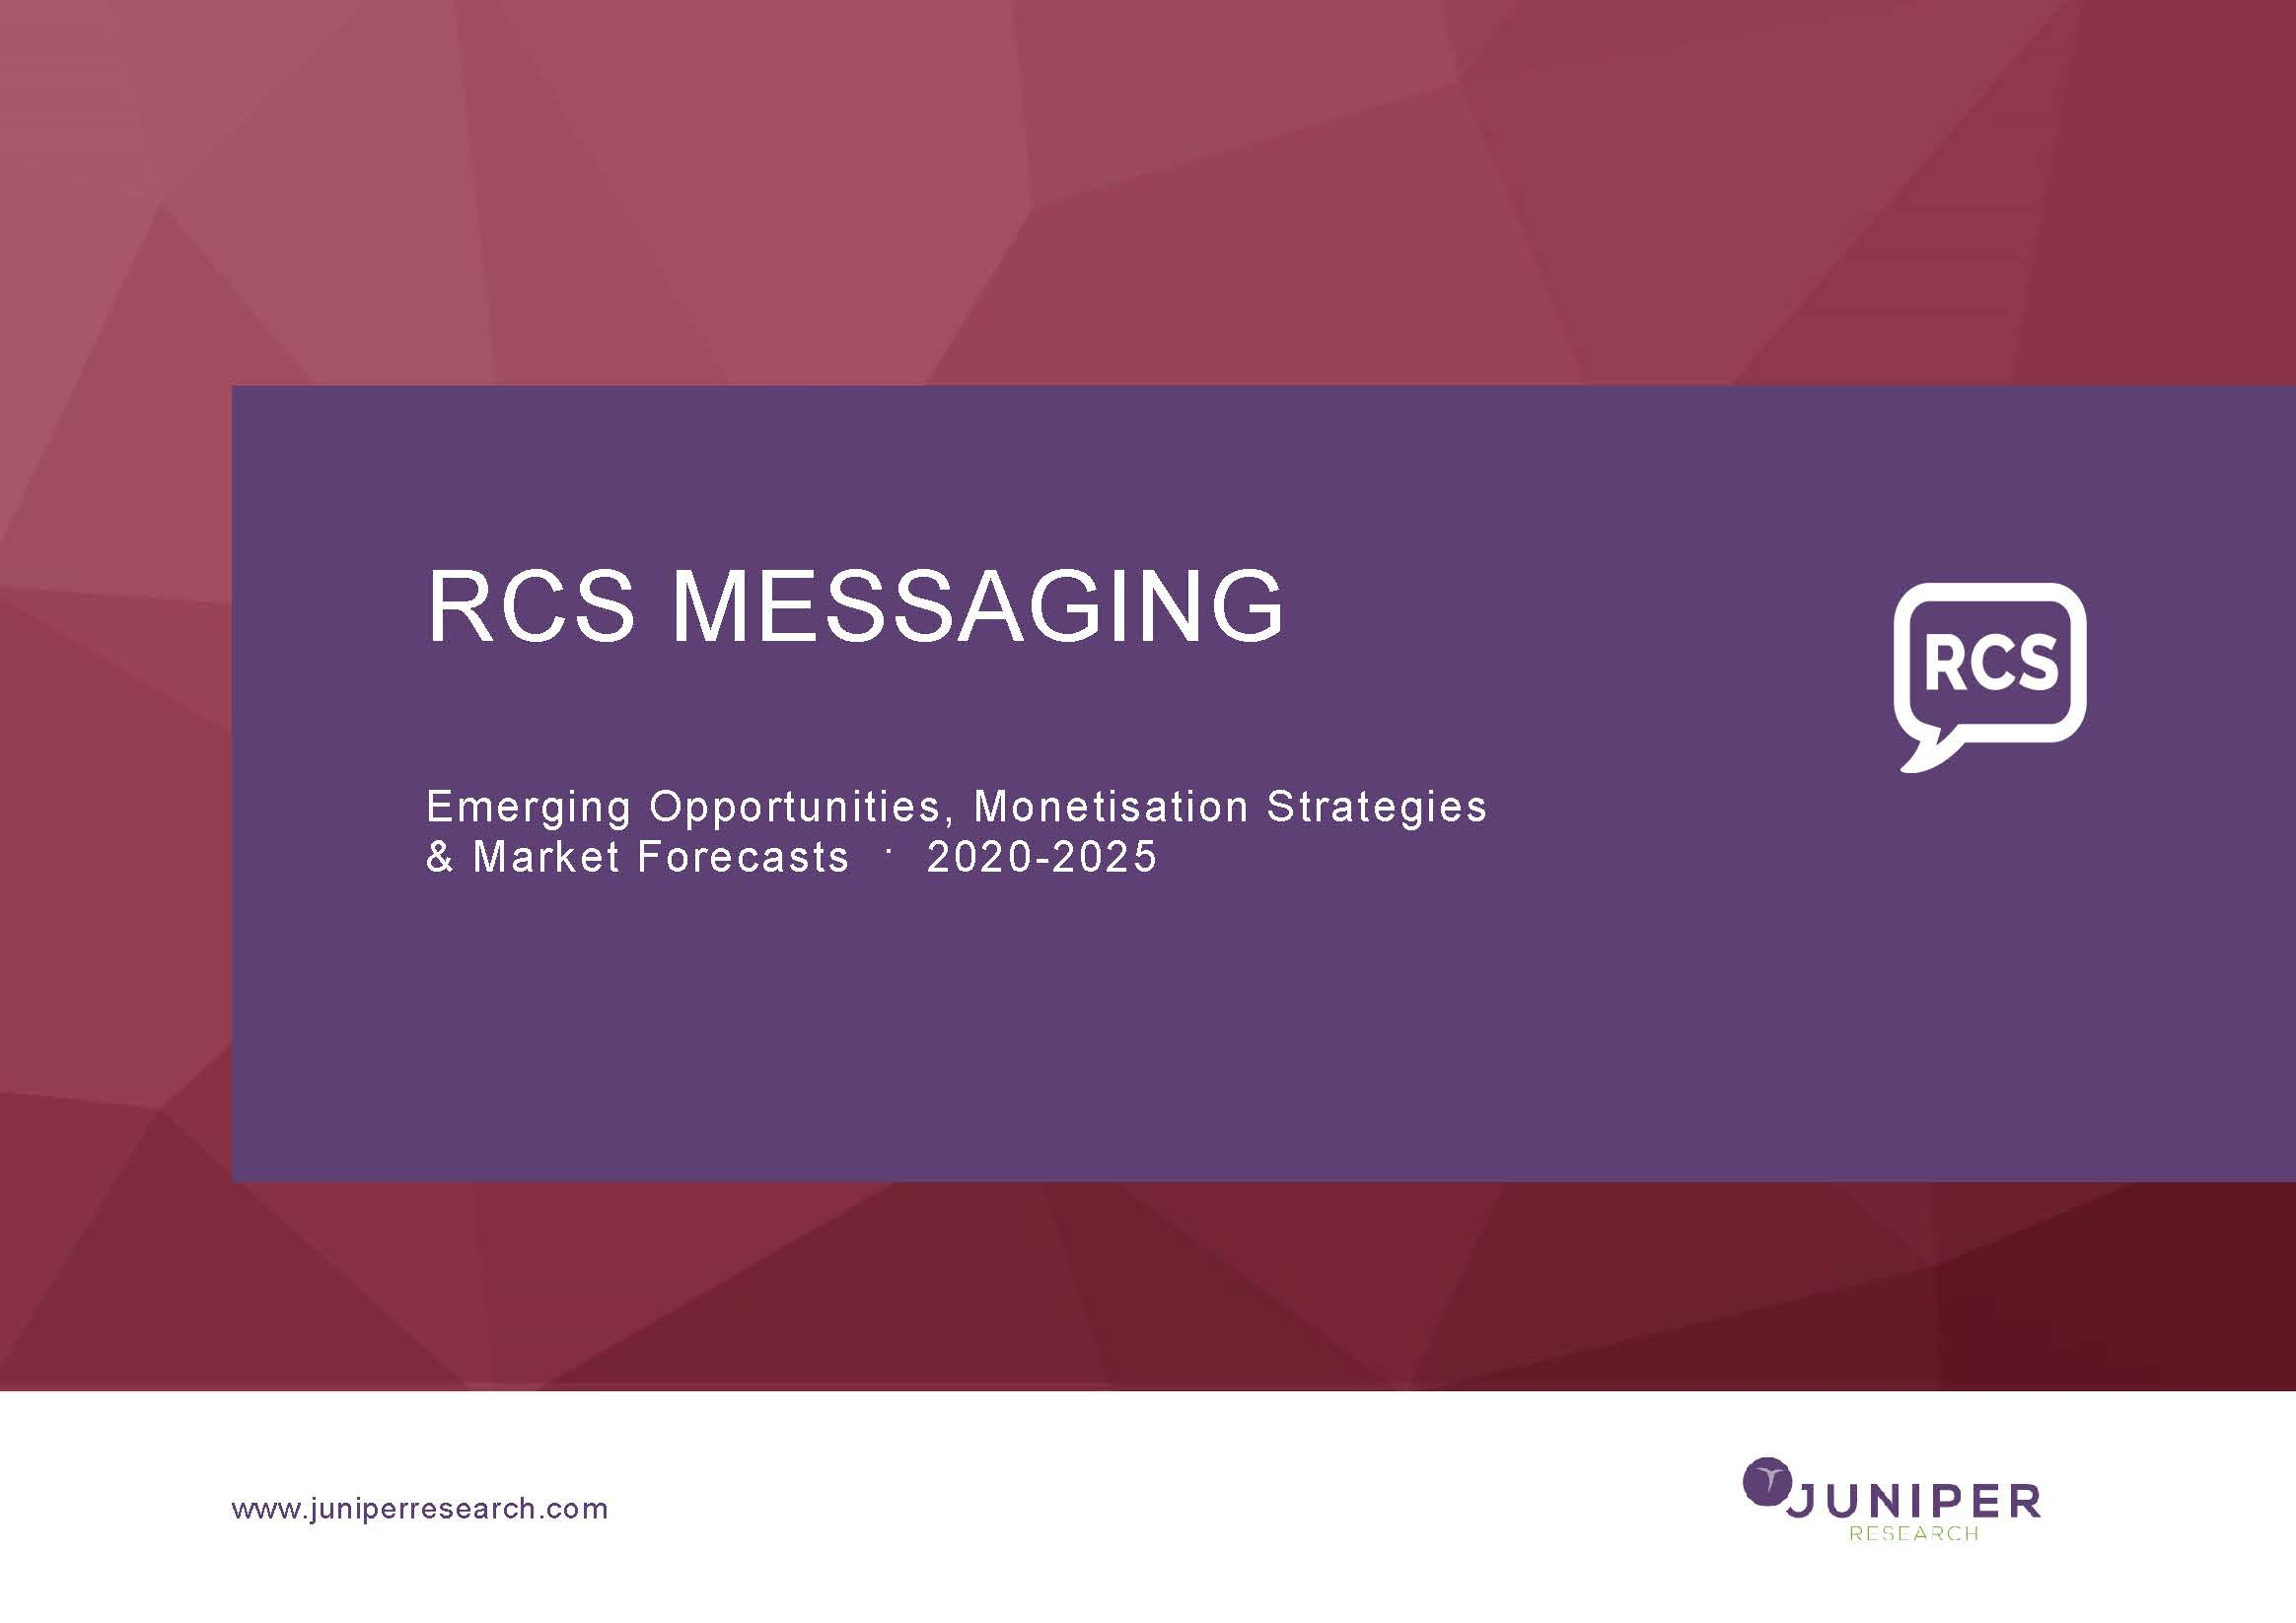 RCS Messaging